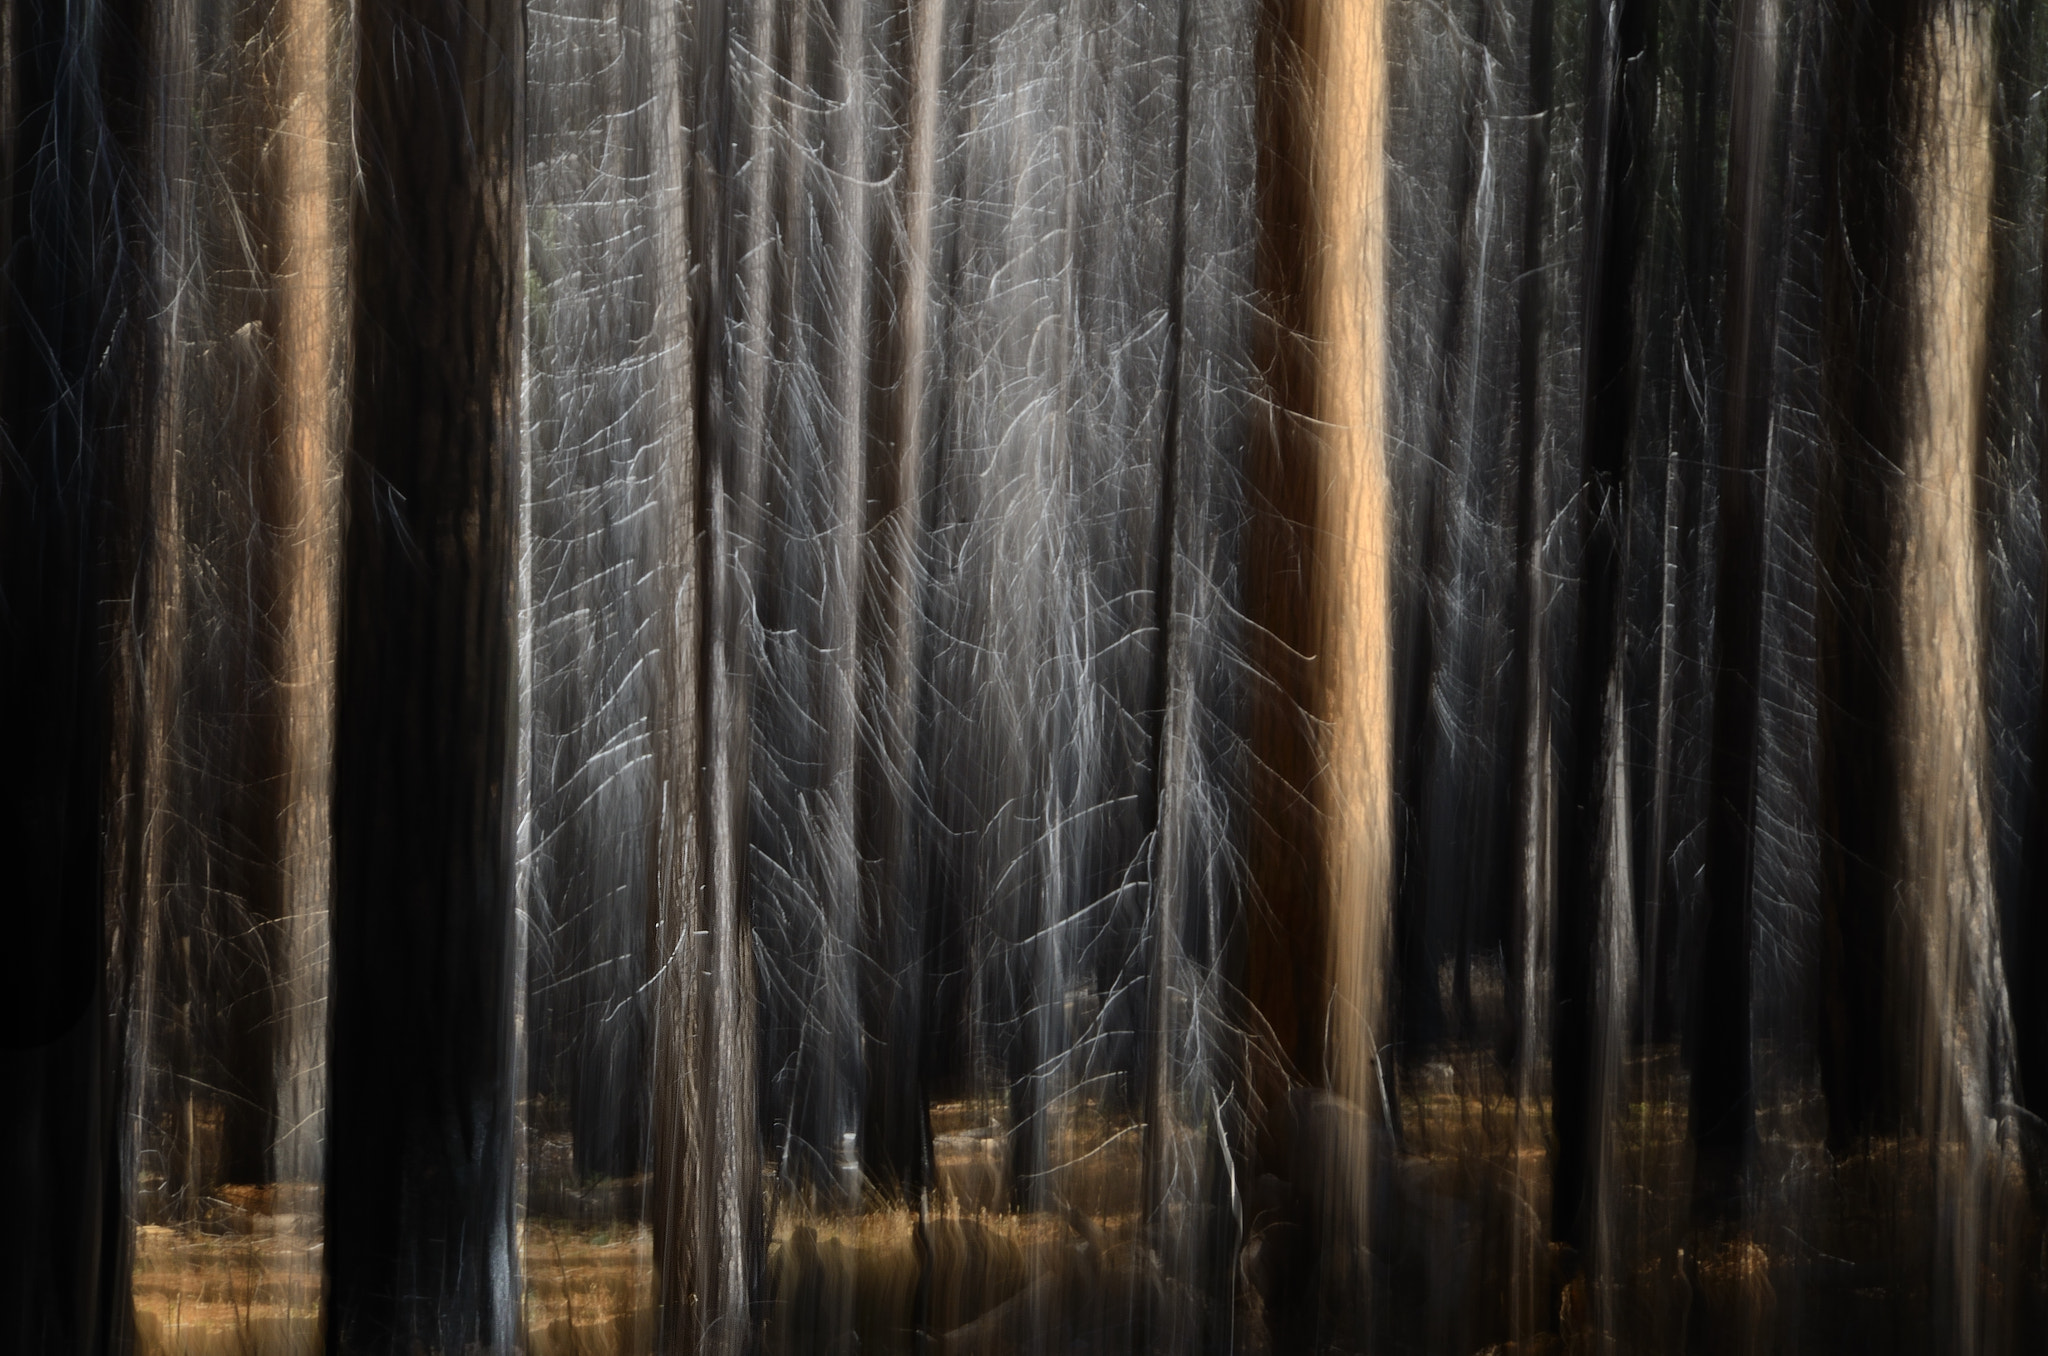 Photograph Bare Trees by Rich Greene on 500px